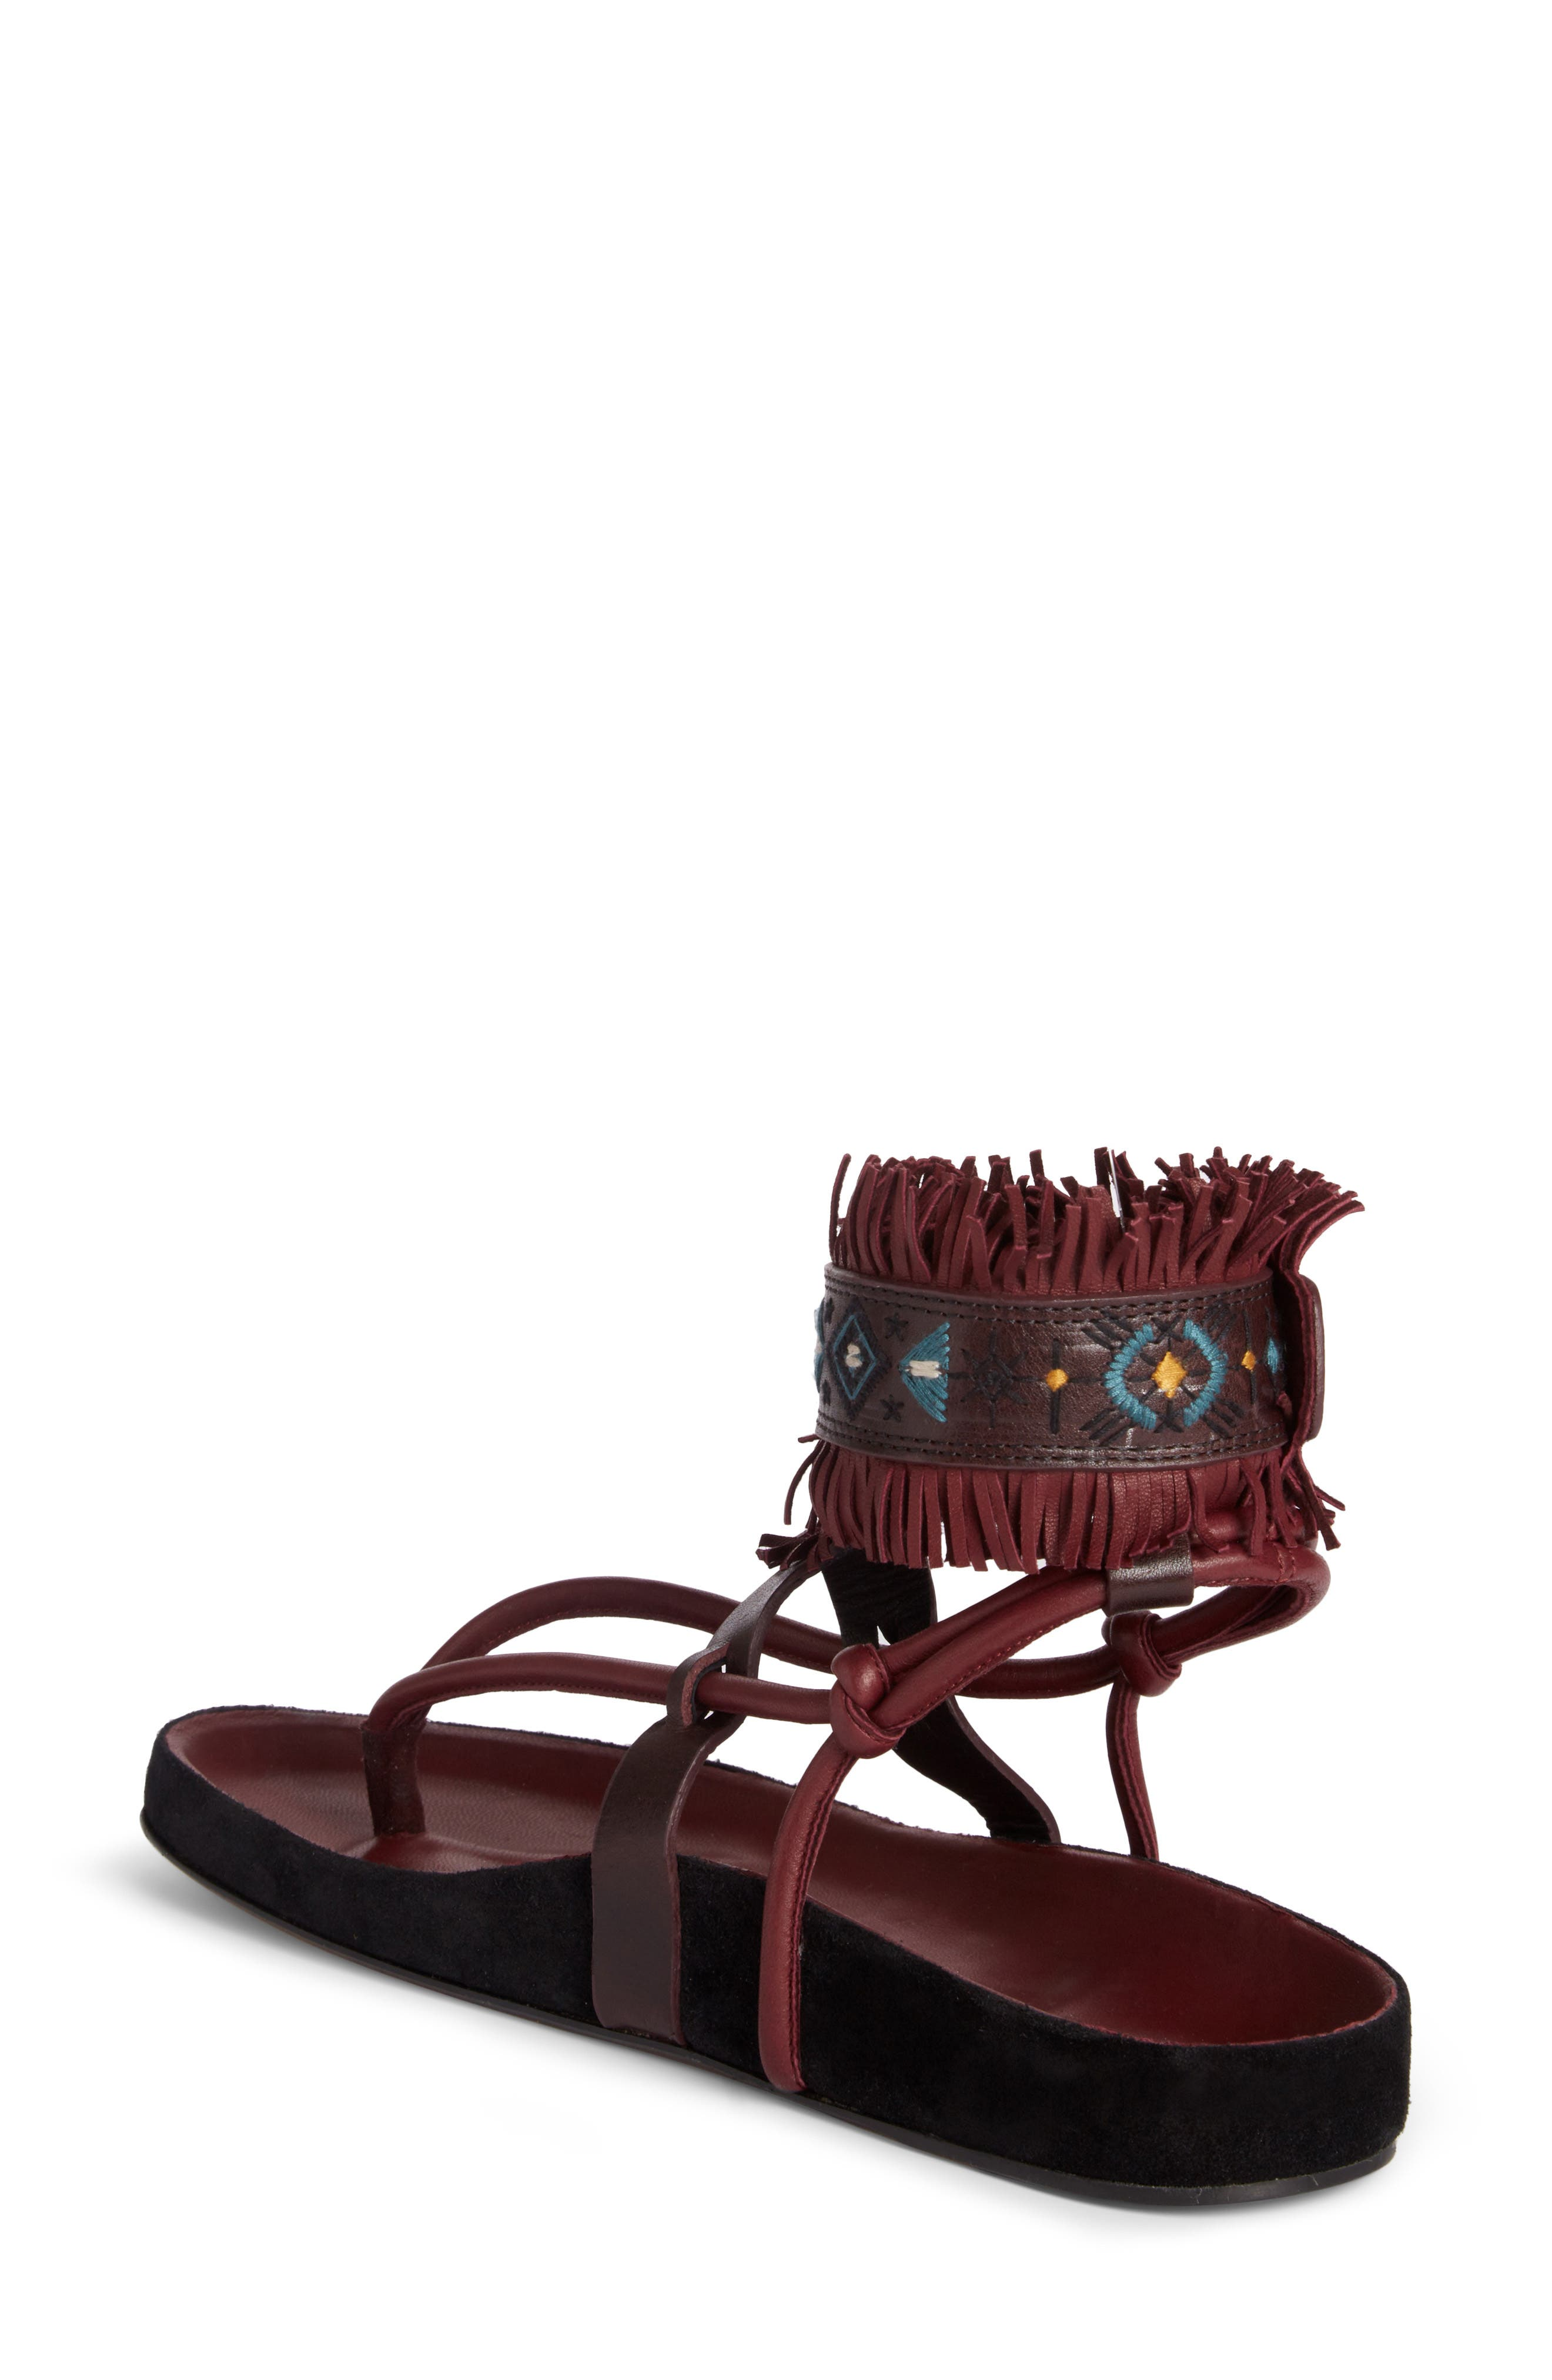 Eliby Fringe Thong Sandal,                             Alternate thumbnail 2, color,                             930